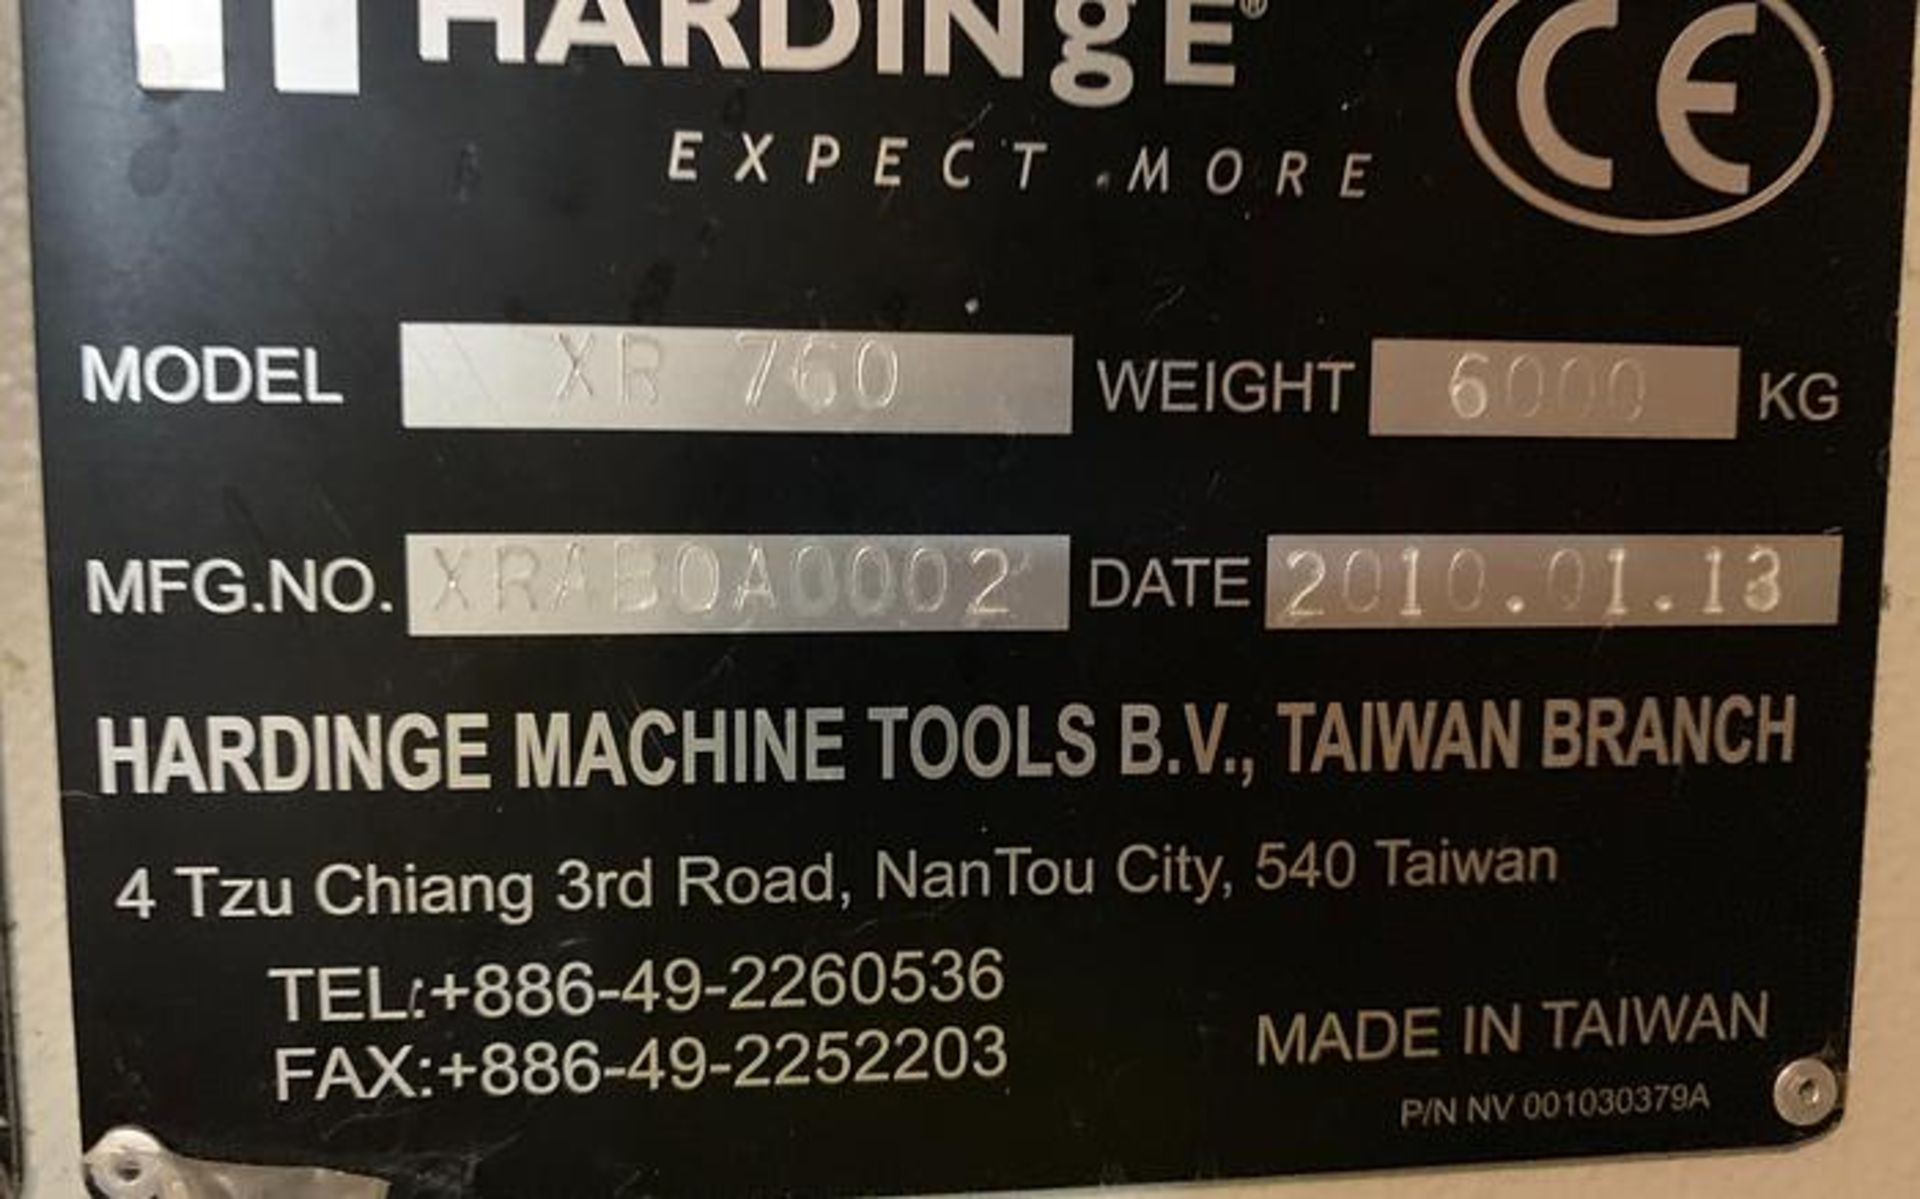 """HARDINGE XR760 VMC PRODUCTION CENTER 30""""X24""""X24"""" W/4TH AXIS TRUNION, YEAR 2010, SN XRAB0A0002 - Image 11 of 14"""